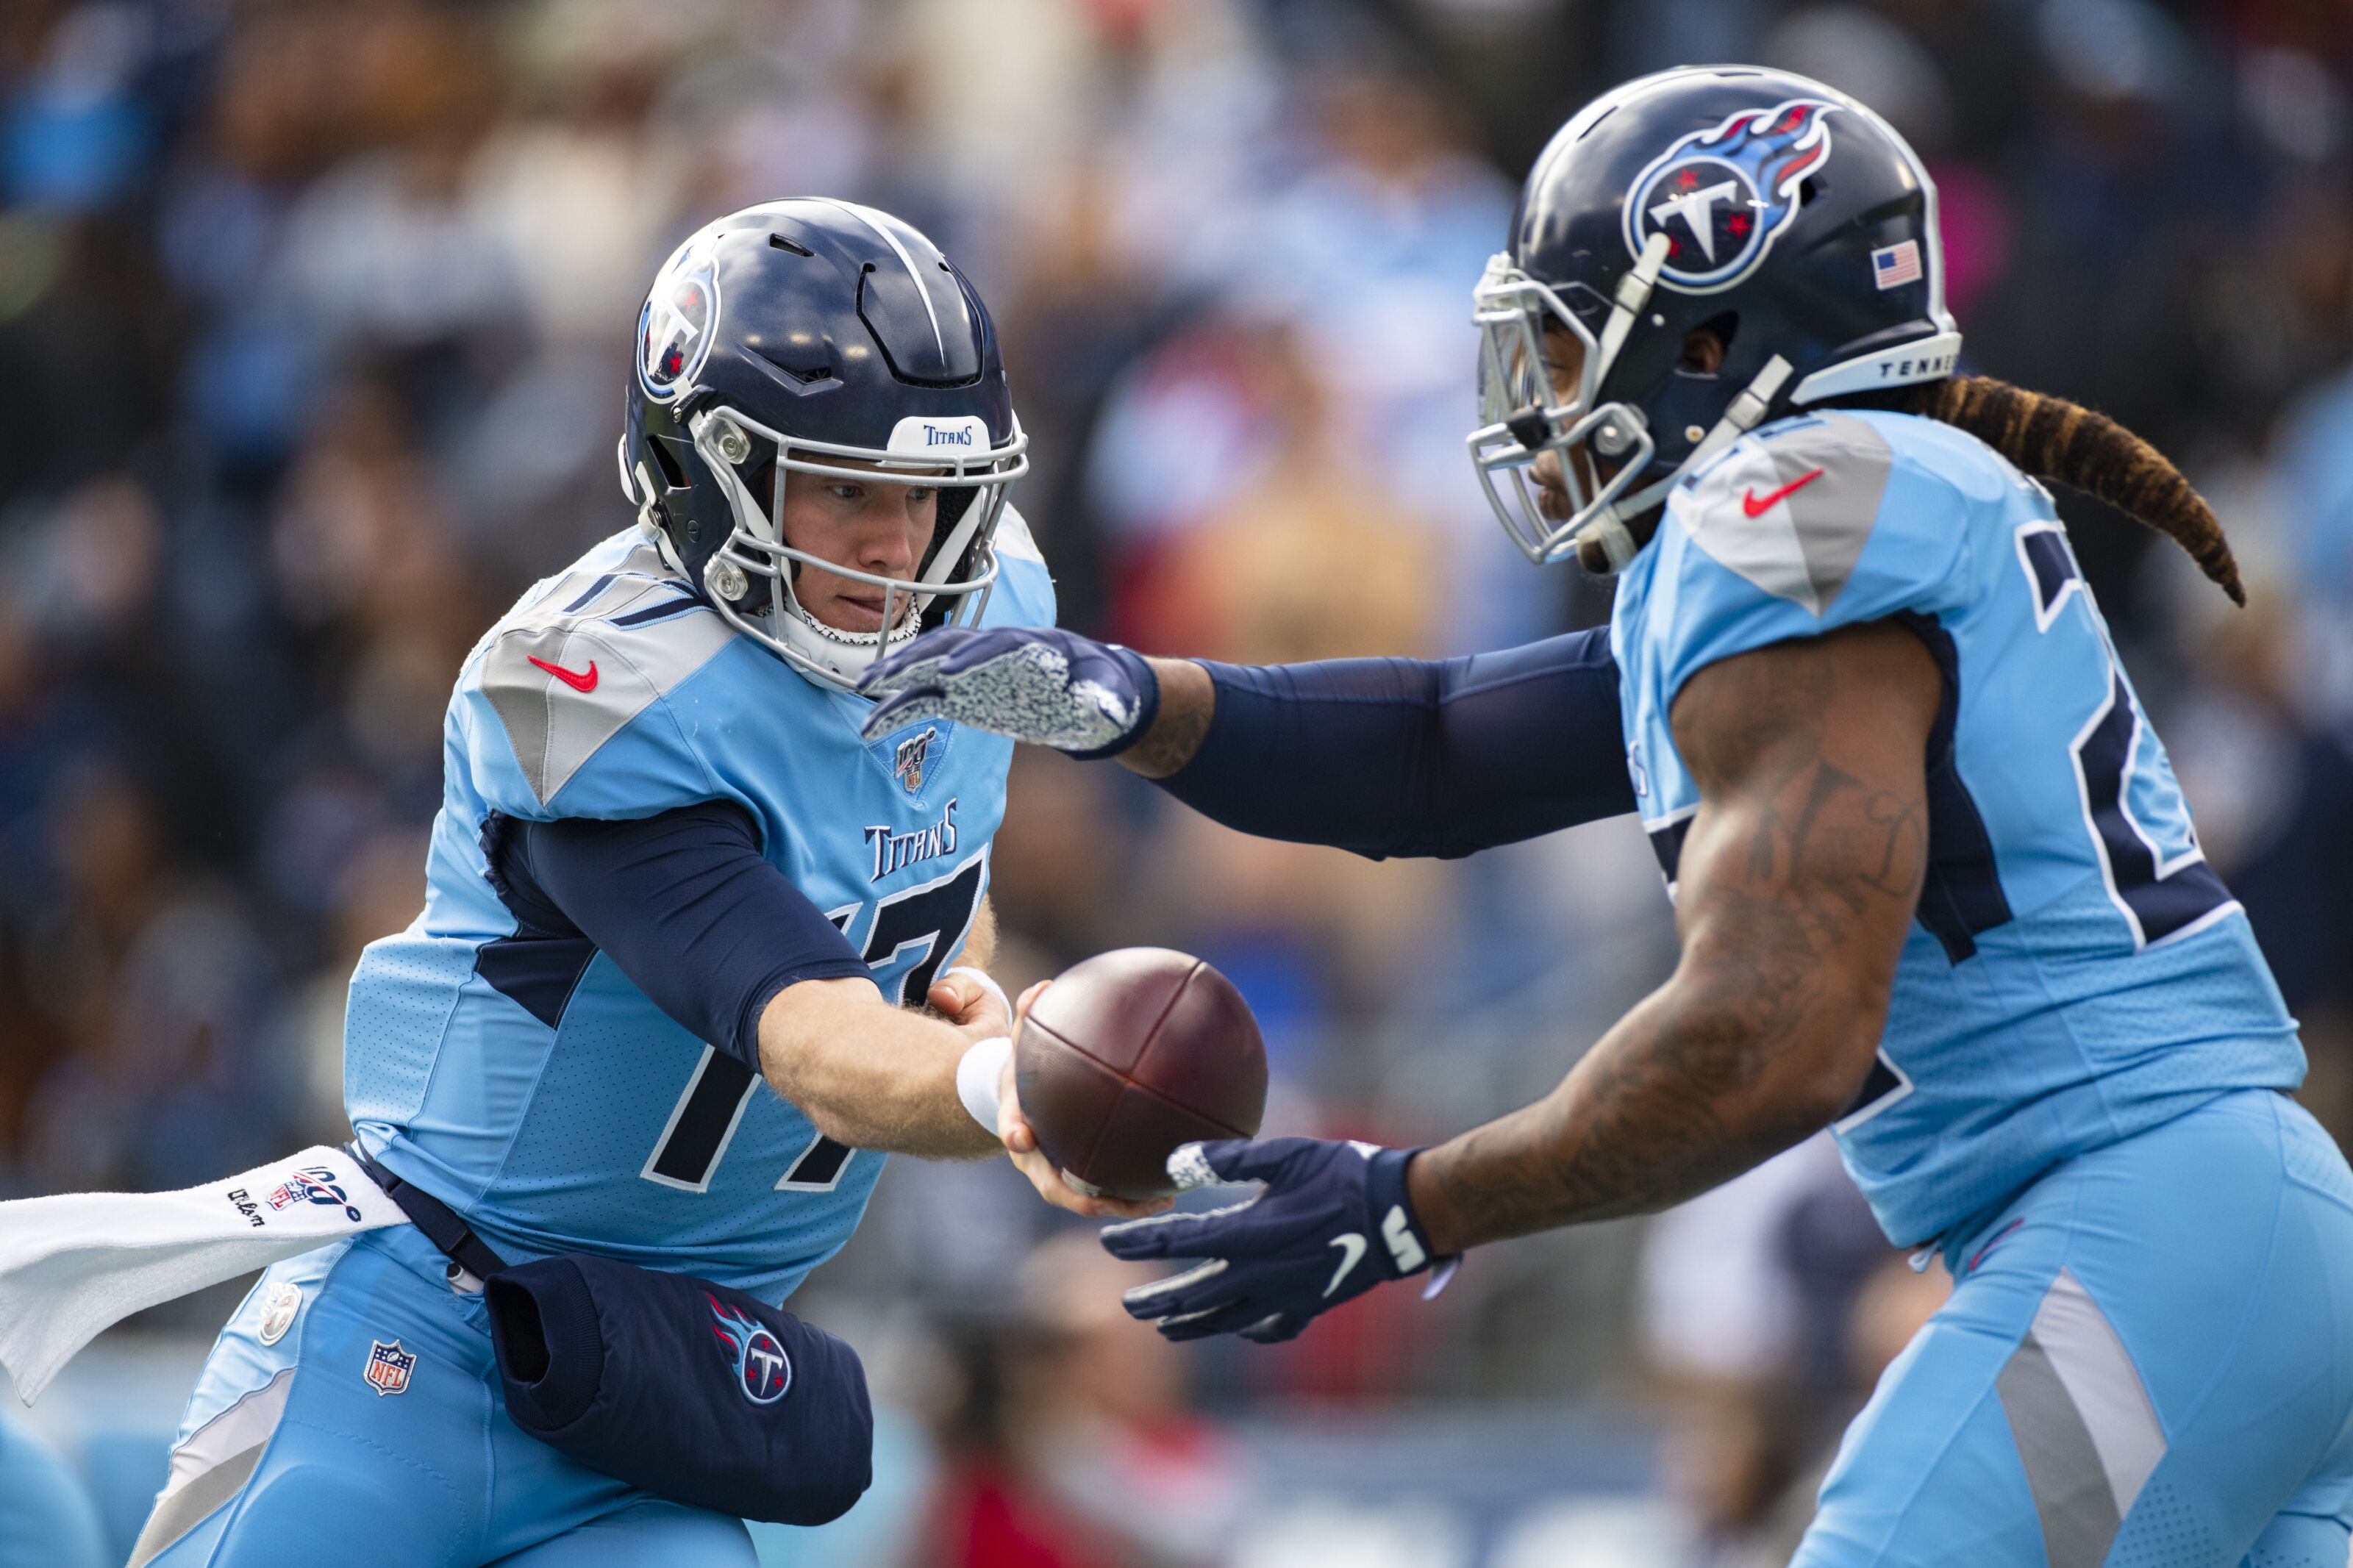 List of Tennessee Titans 2020 free agents and projected salary cap space